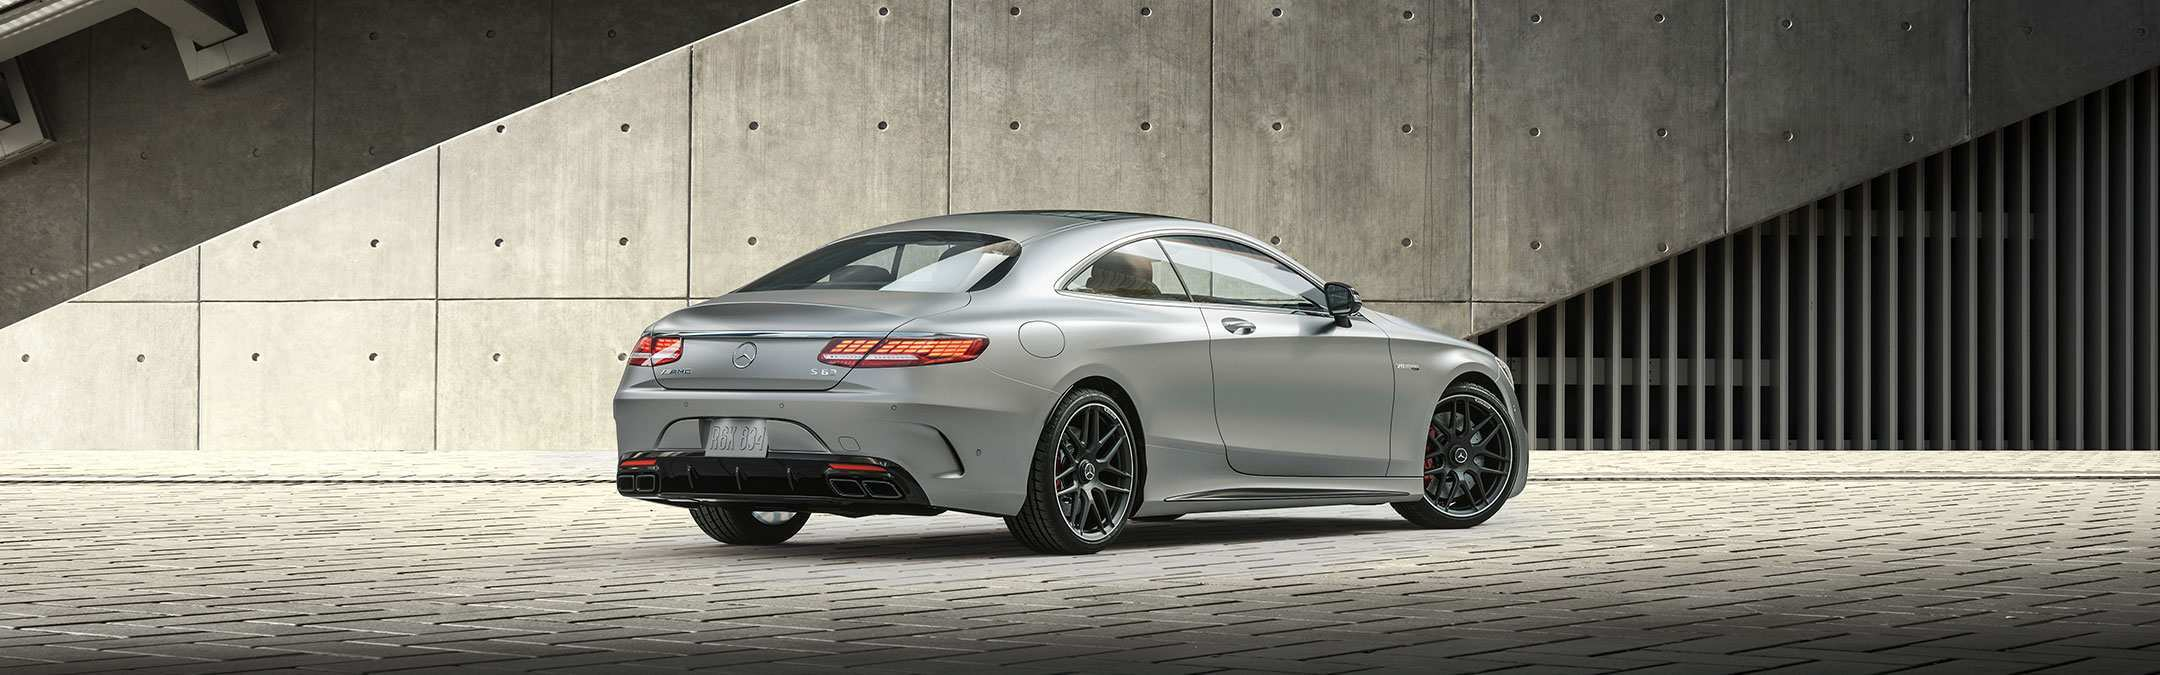 43 All New Mercedes 2019 Coupe Engine